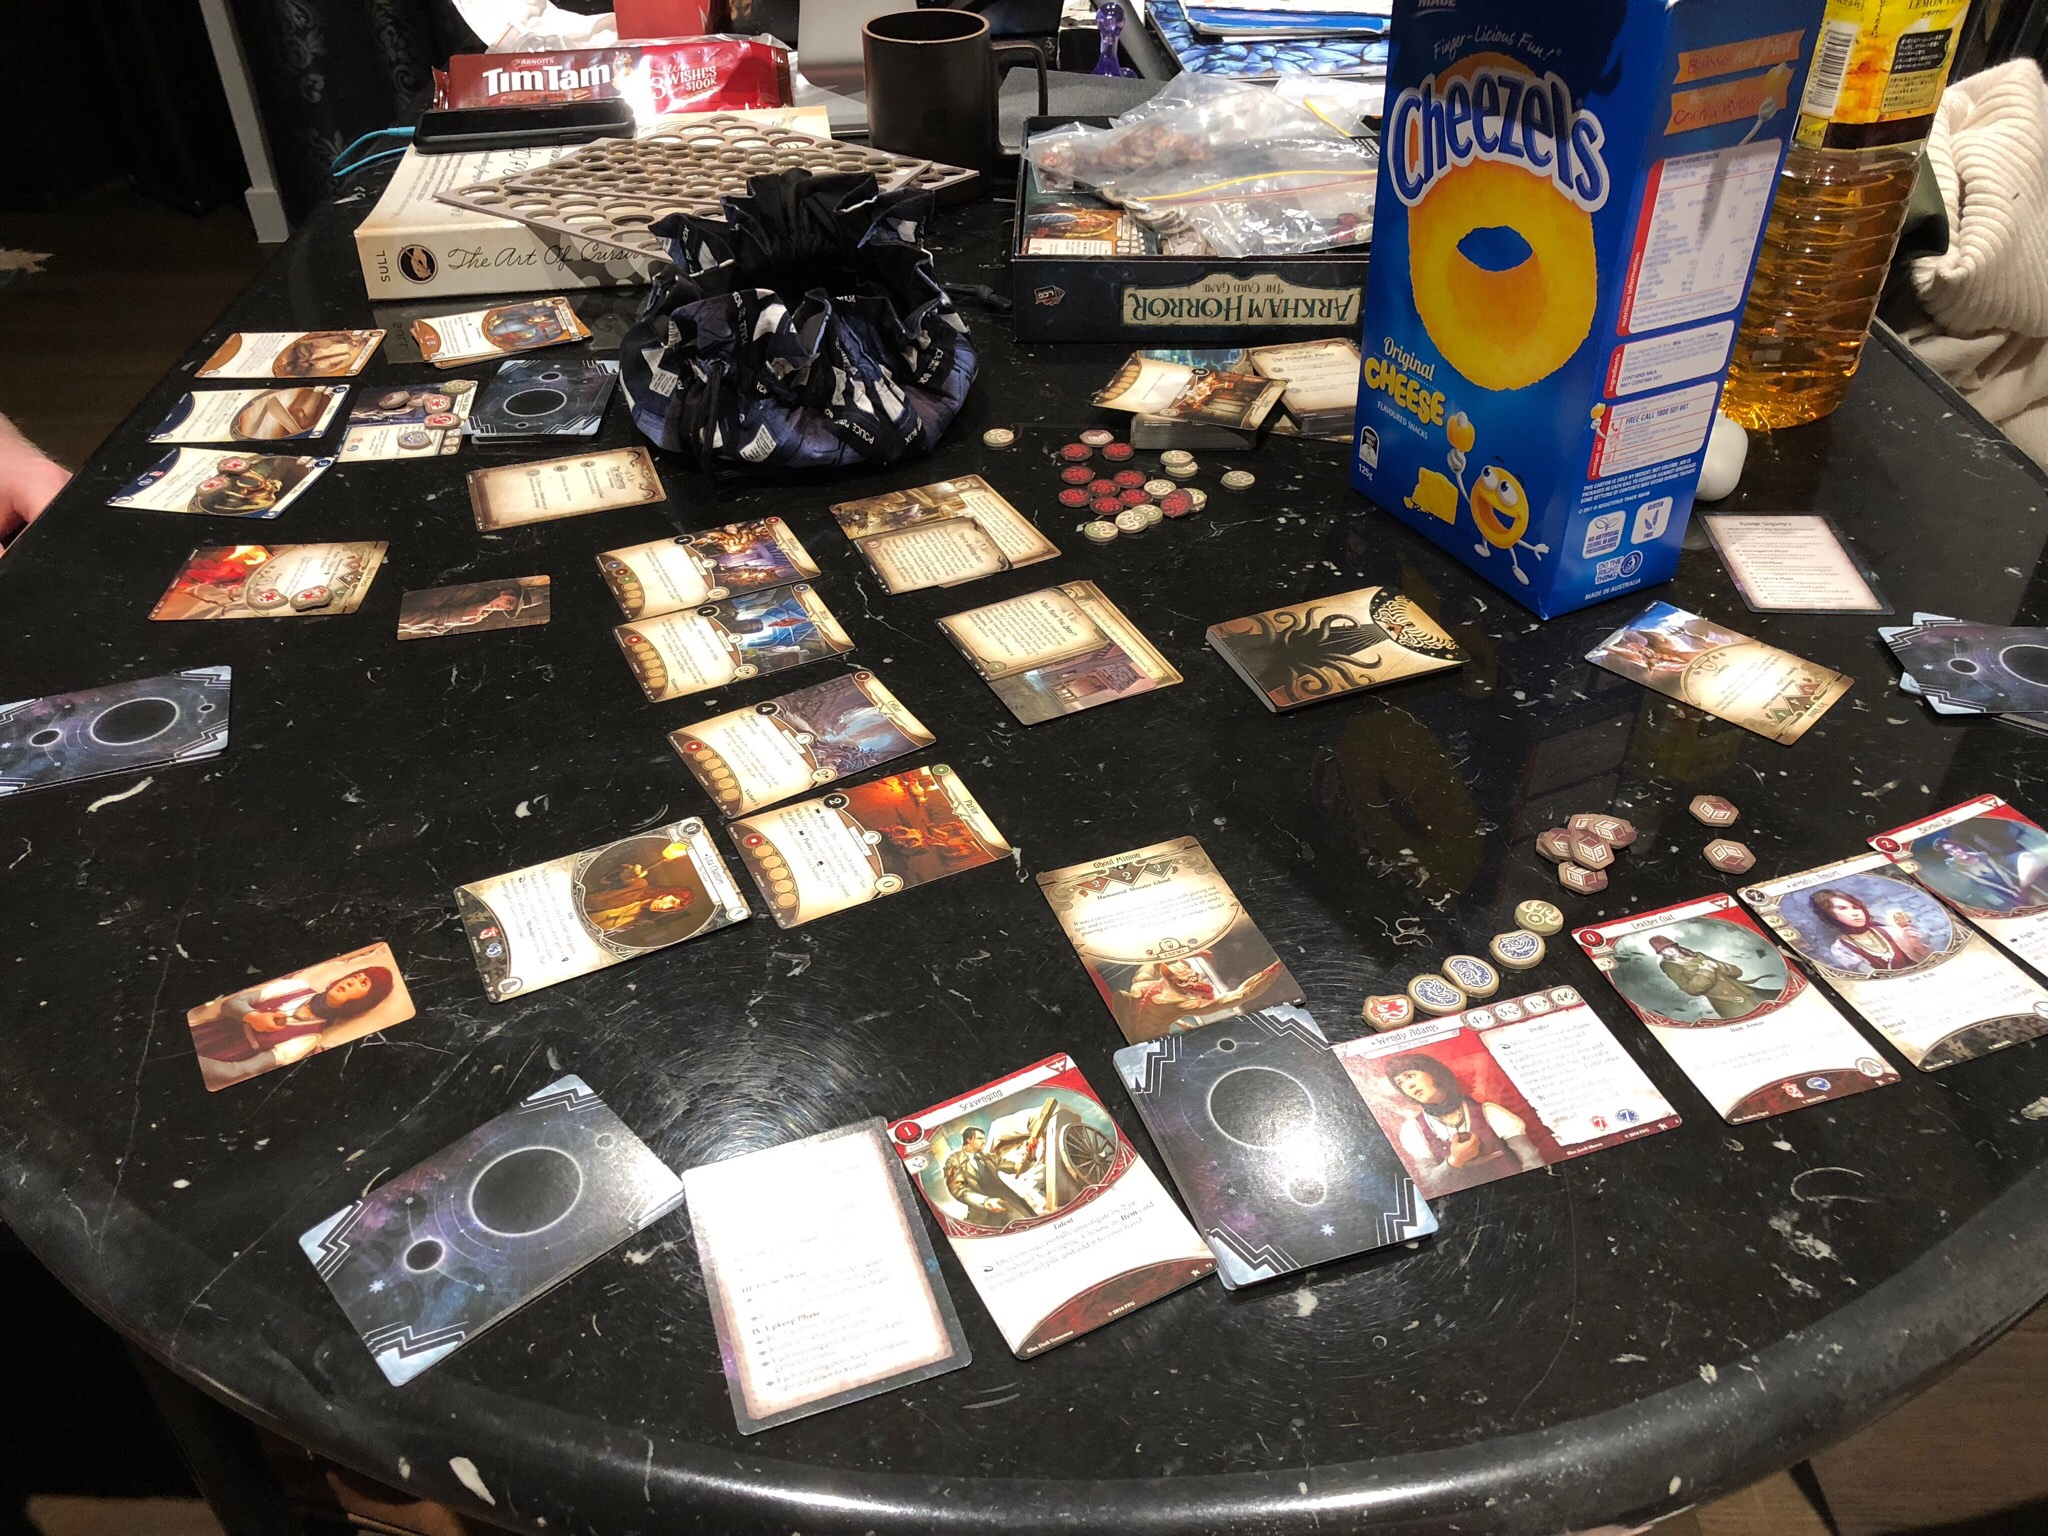 Table covered with cards and cardboard tokens